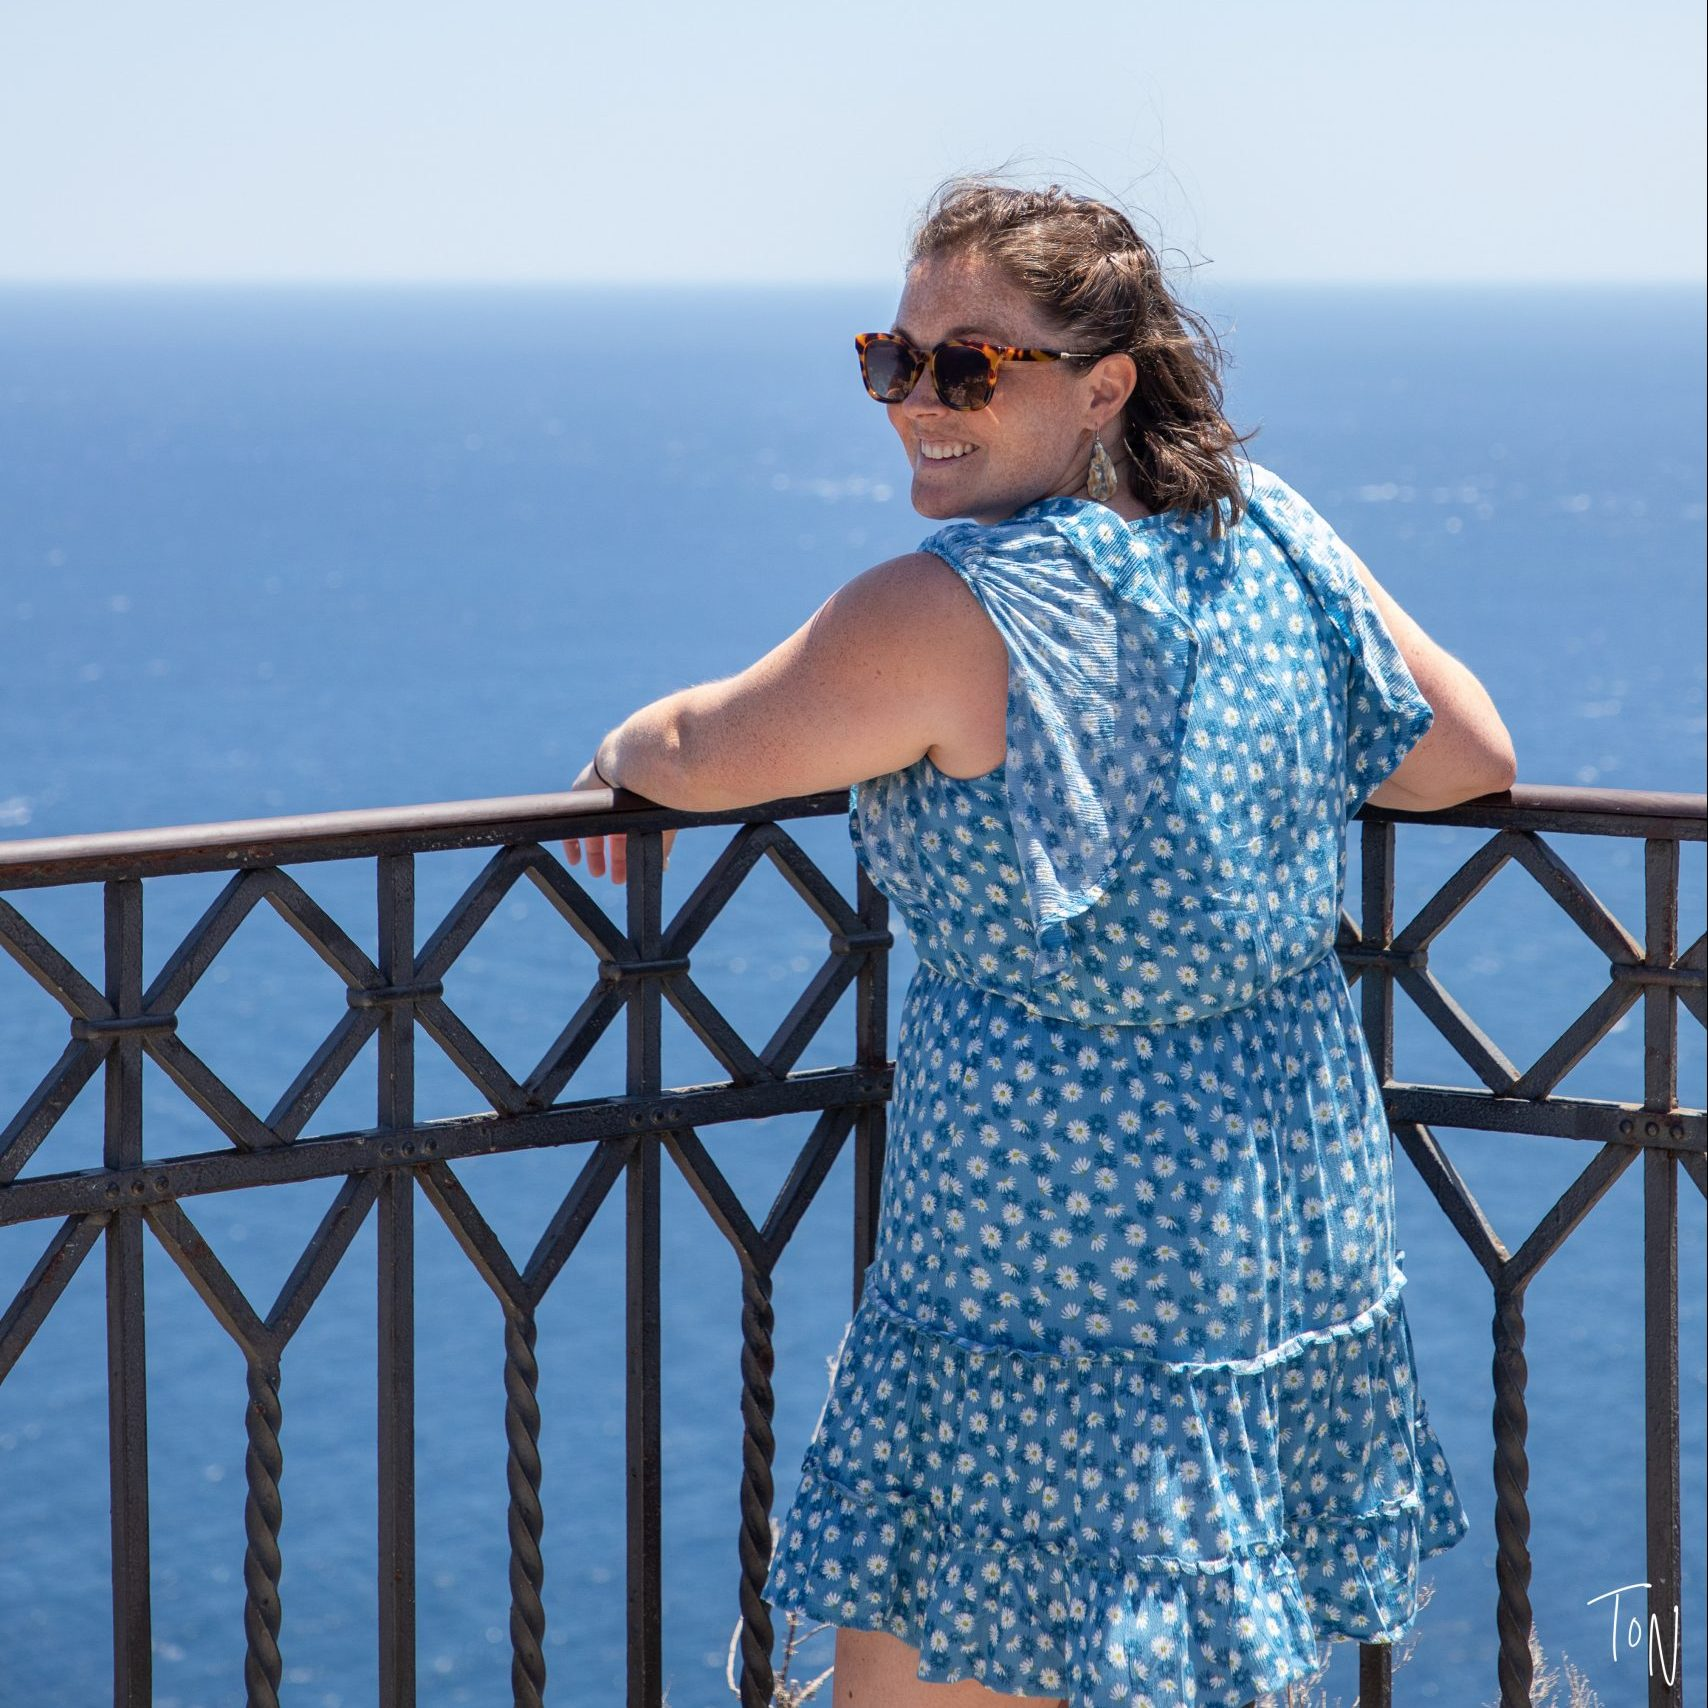 Taormina is one of the most beautiful parts of Sicily, if not all of Italy!